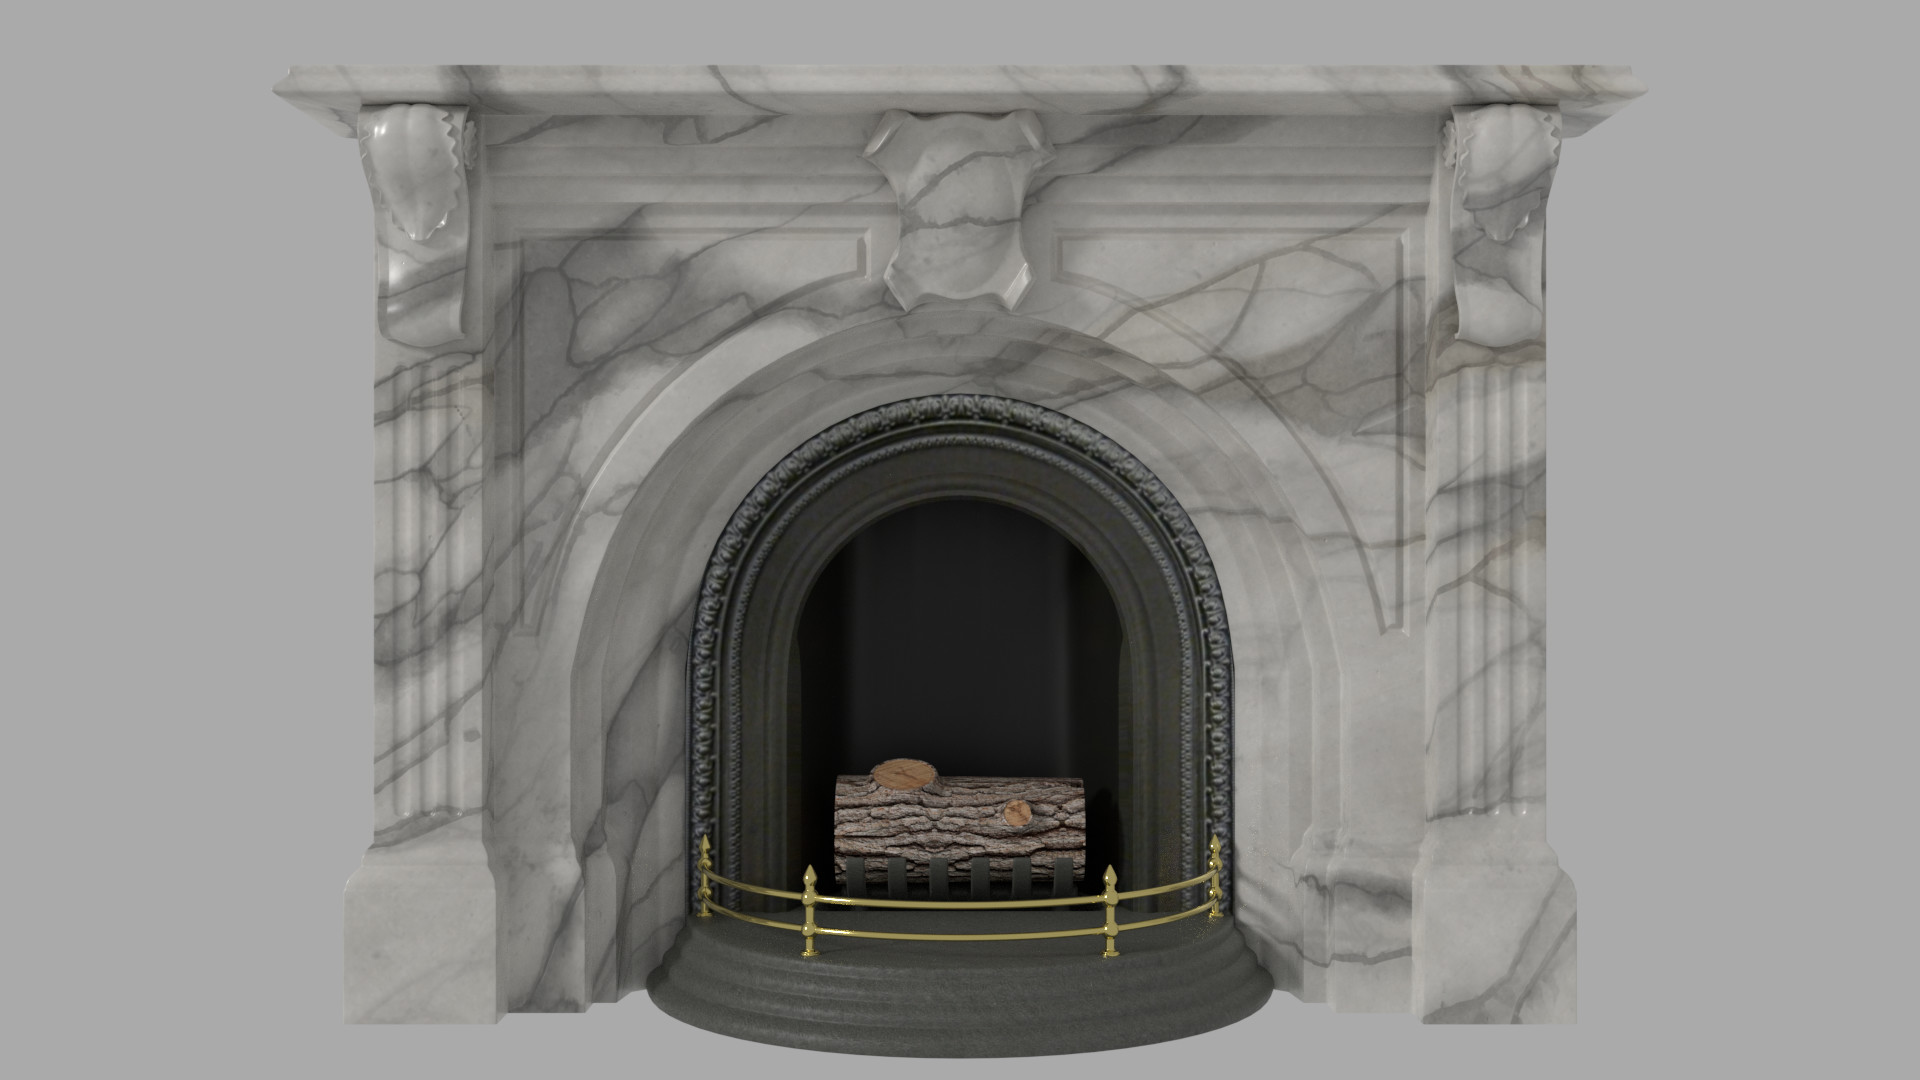 I have become fascinated with modeling late 1800's/early 1900's architecture and props. This gave me a chance to try my hand at that, and to experiment with Blender's smoke and fire sim.